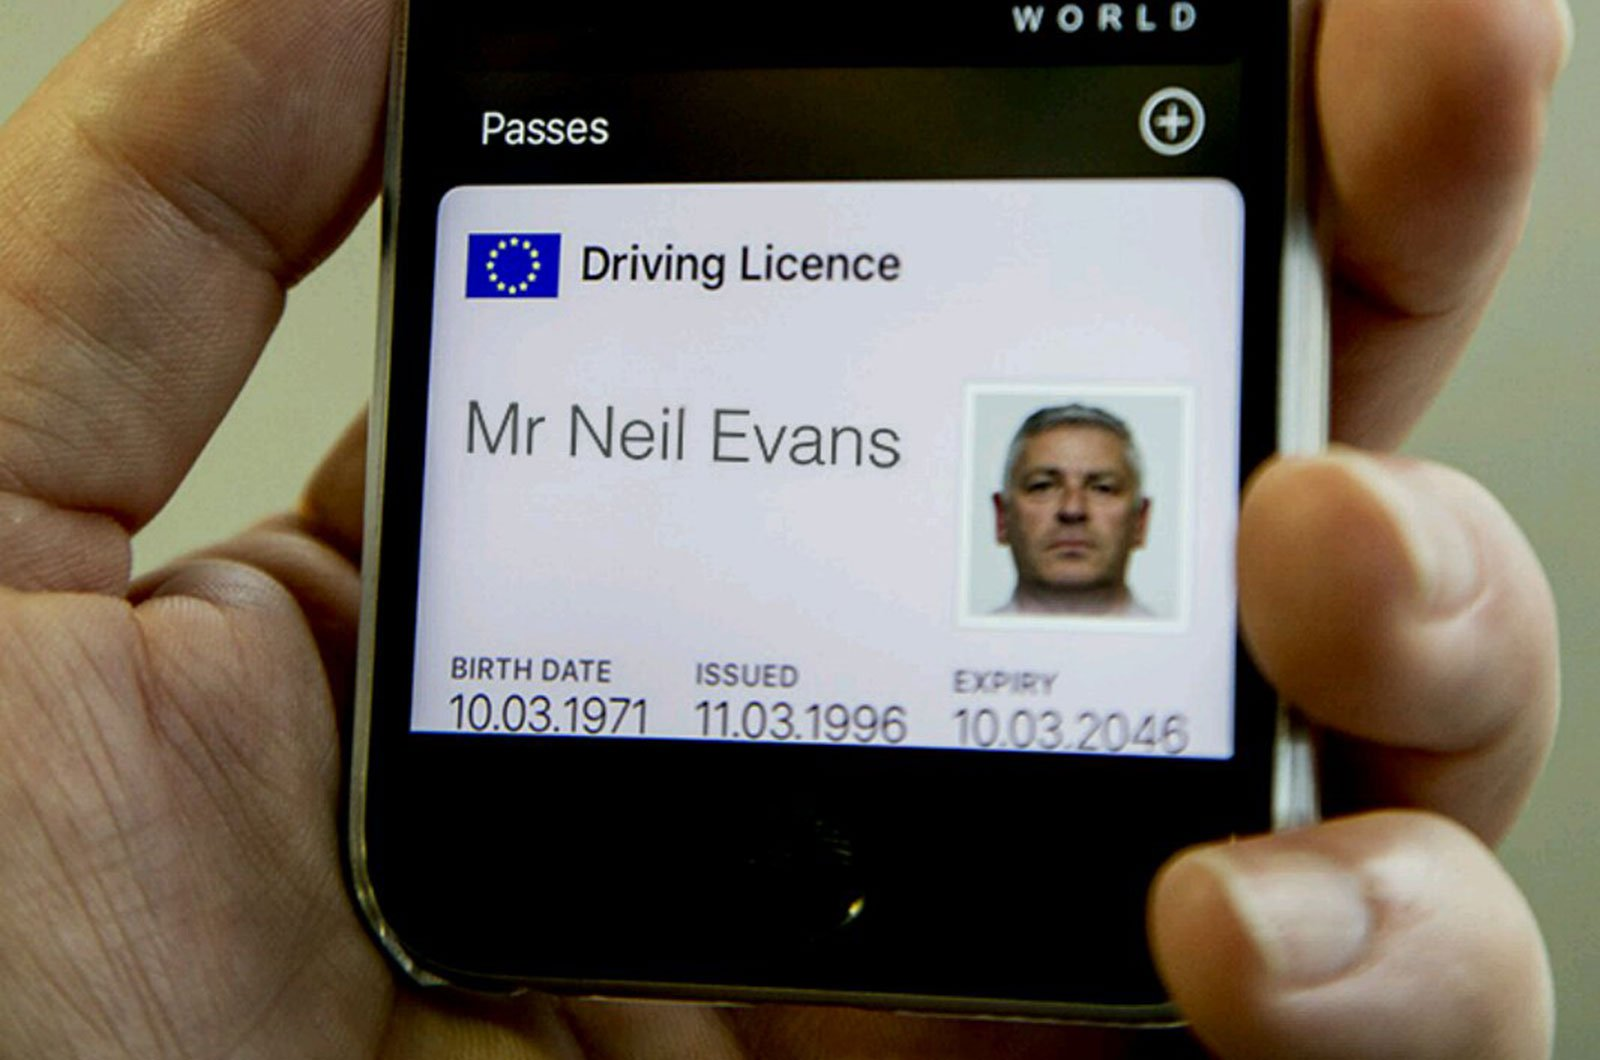 Mobile phone showing driving licence